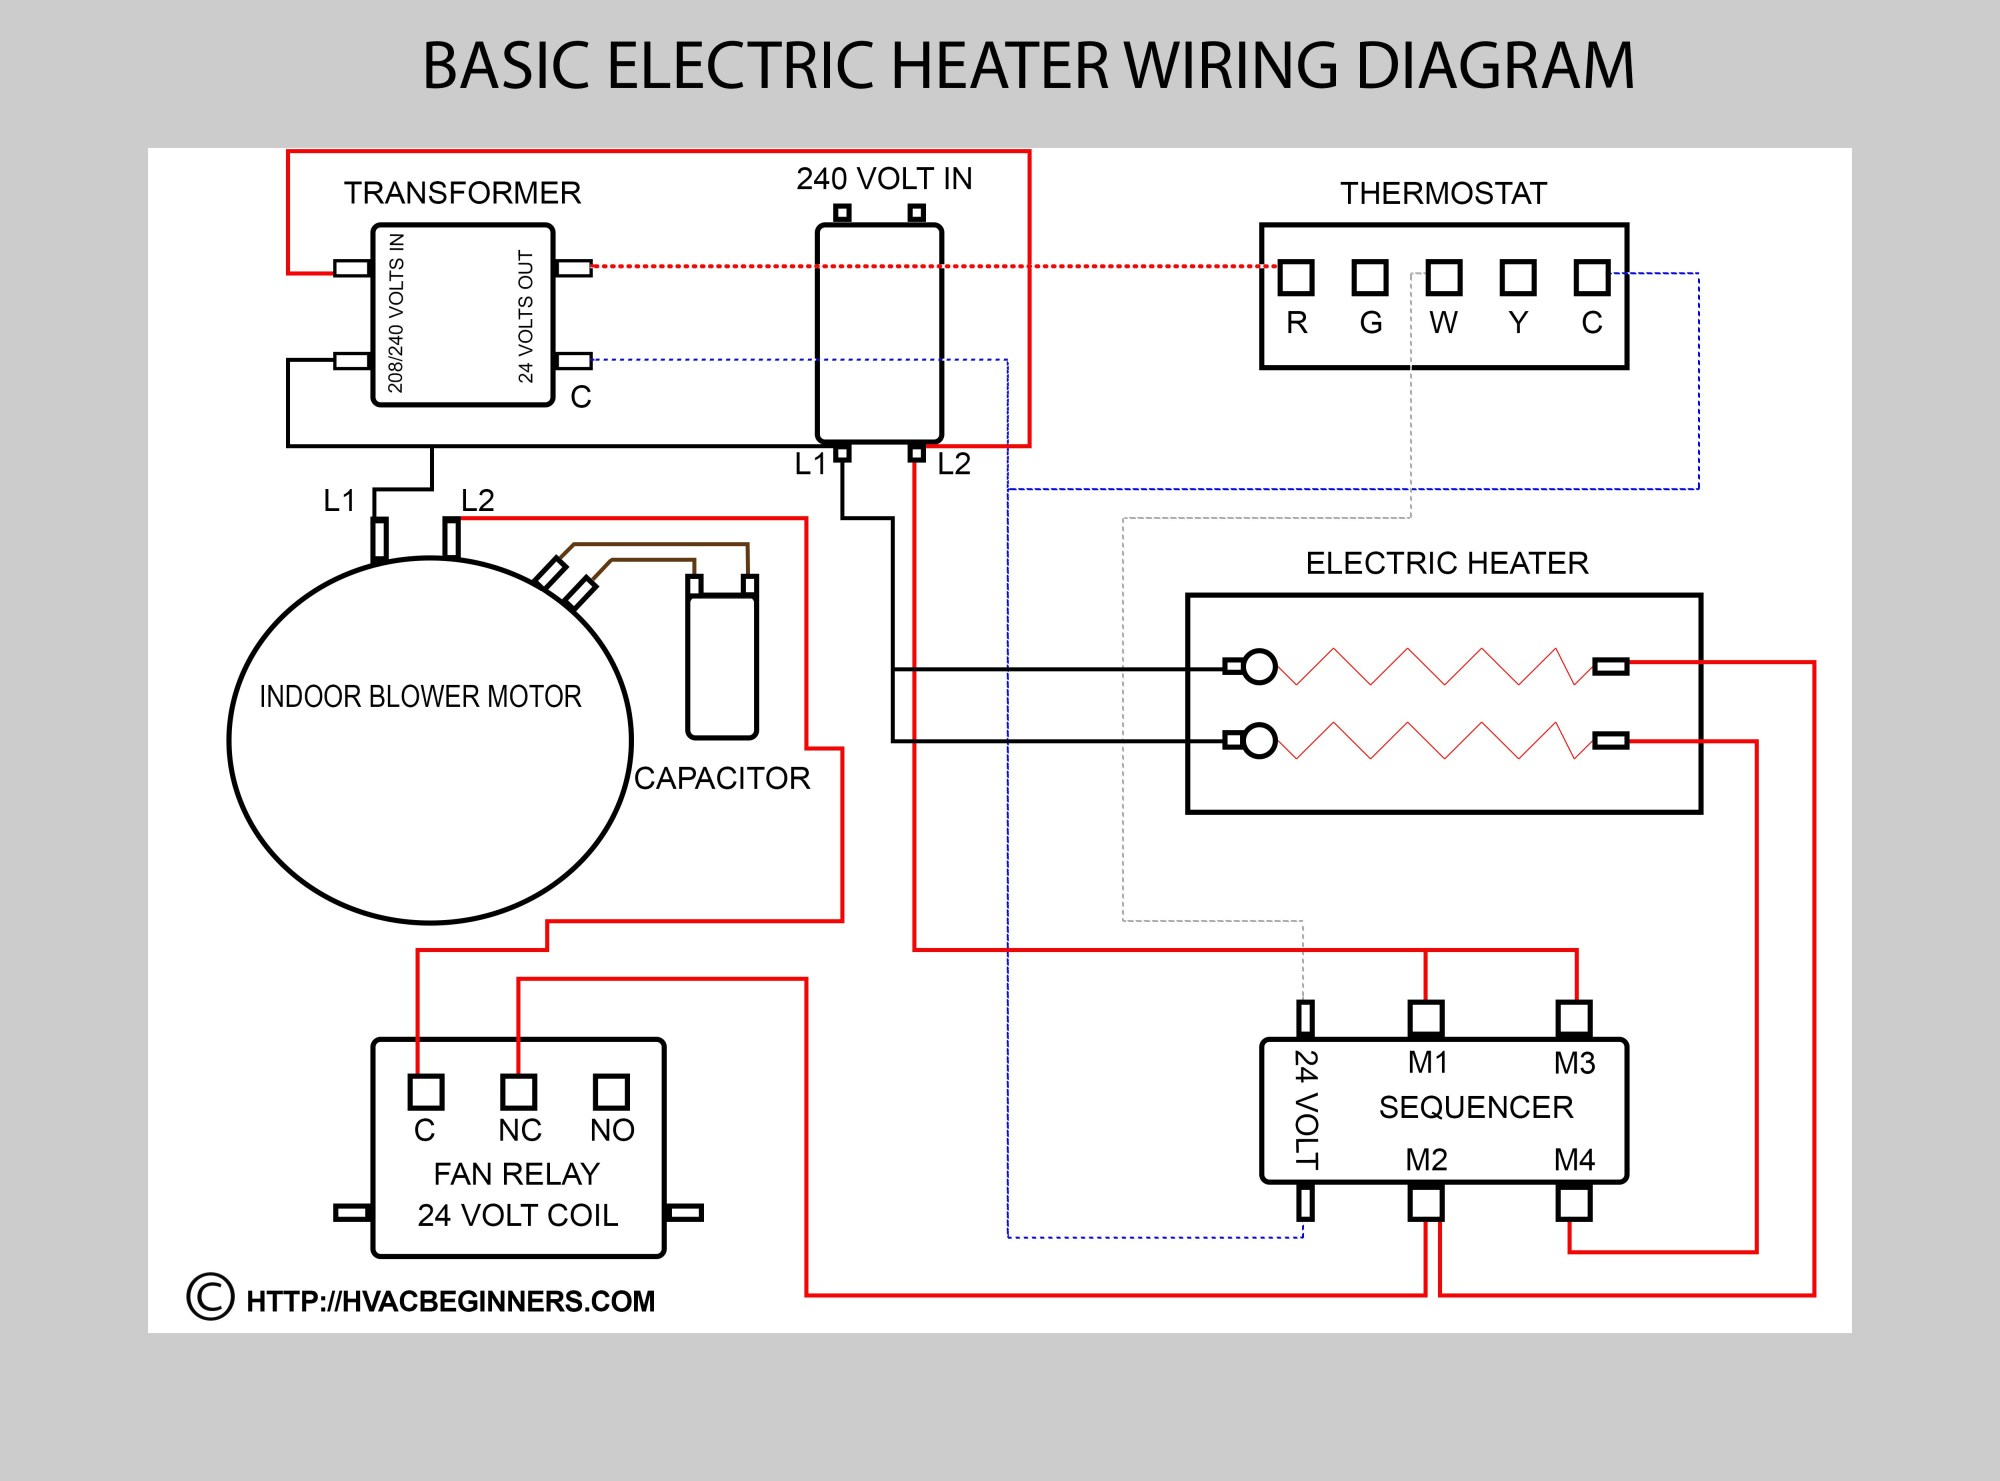 hight resolution of residential air conditioner wiring diagram wiring diagram todaystypical home air conditioner wiring diagram wiring diagrams carrier